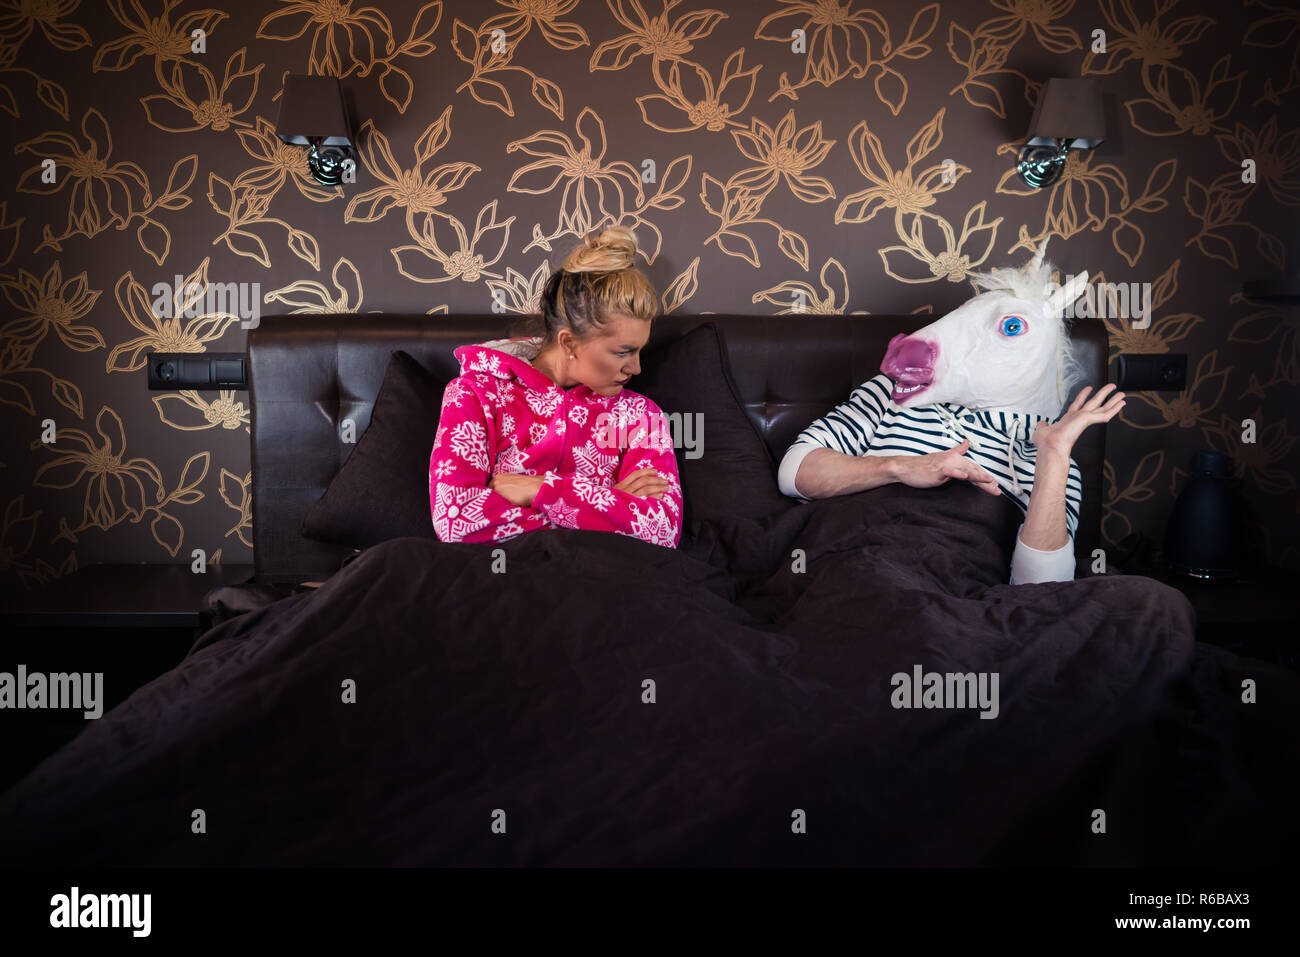 Serious girl in pajama sits on bed with strange boyfriend in freaky mask. Relationship problems of unusual couple. Young woman with unicorn. - Stock Image